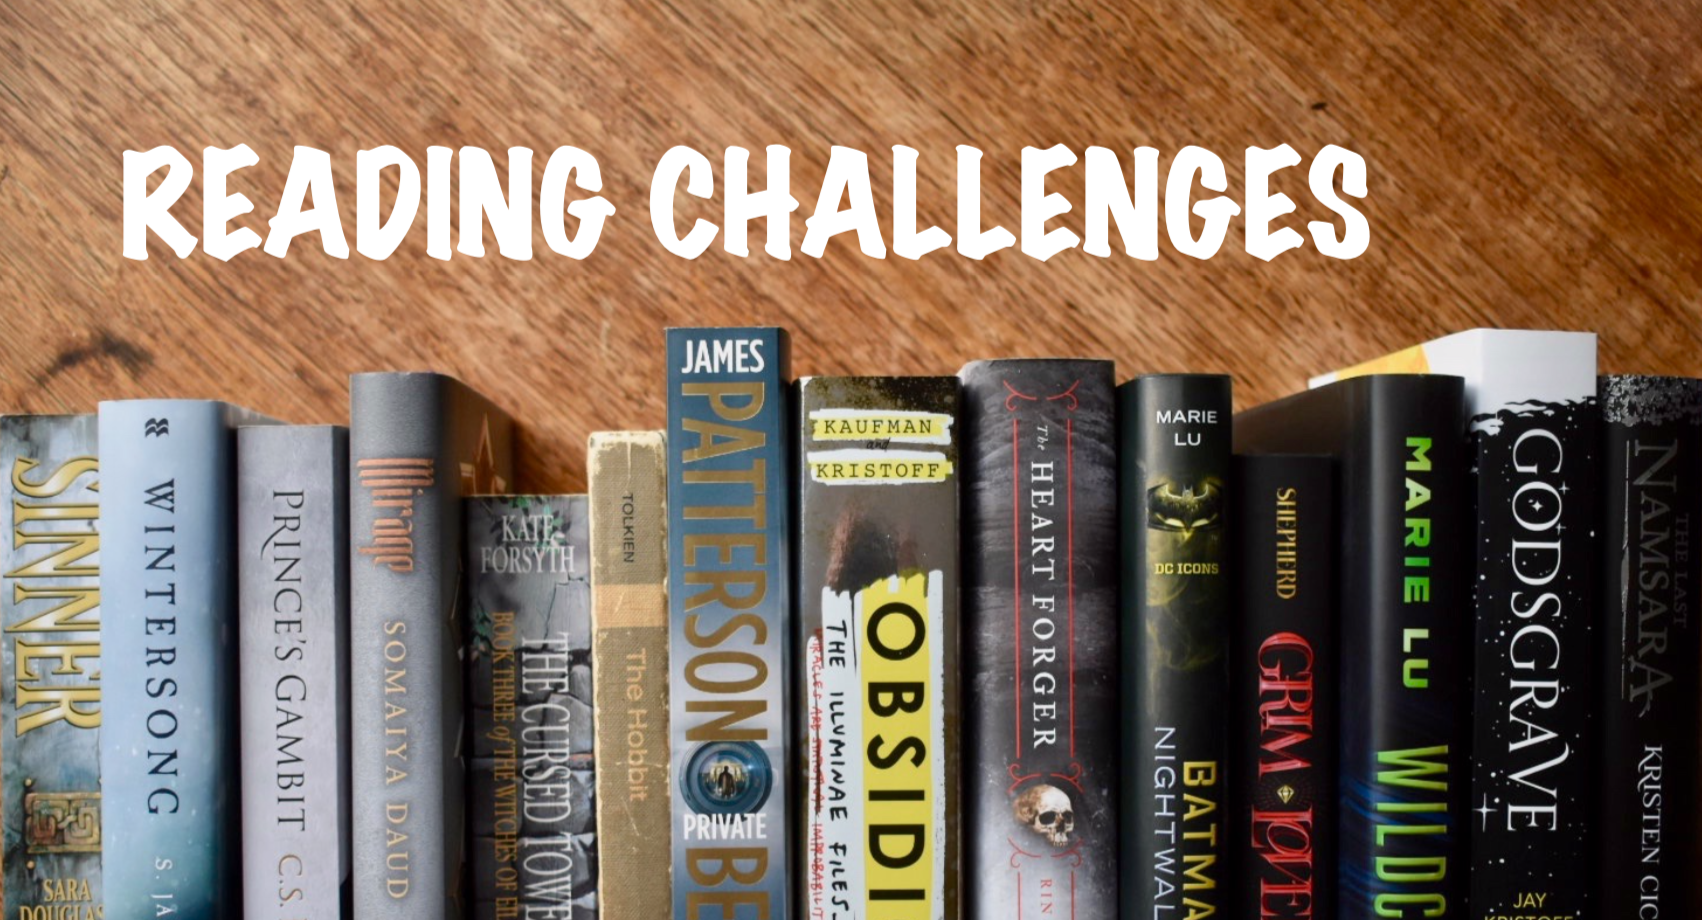 Reading challenge banner with grey and black book spines